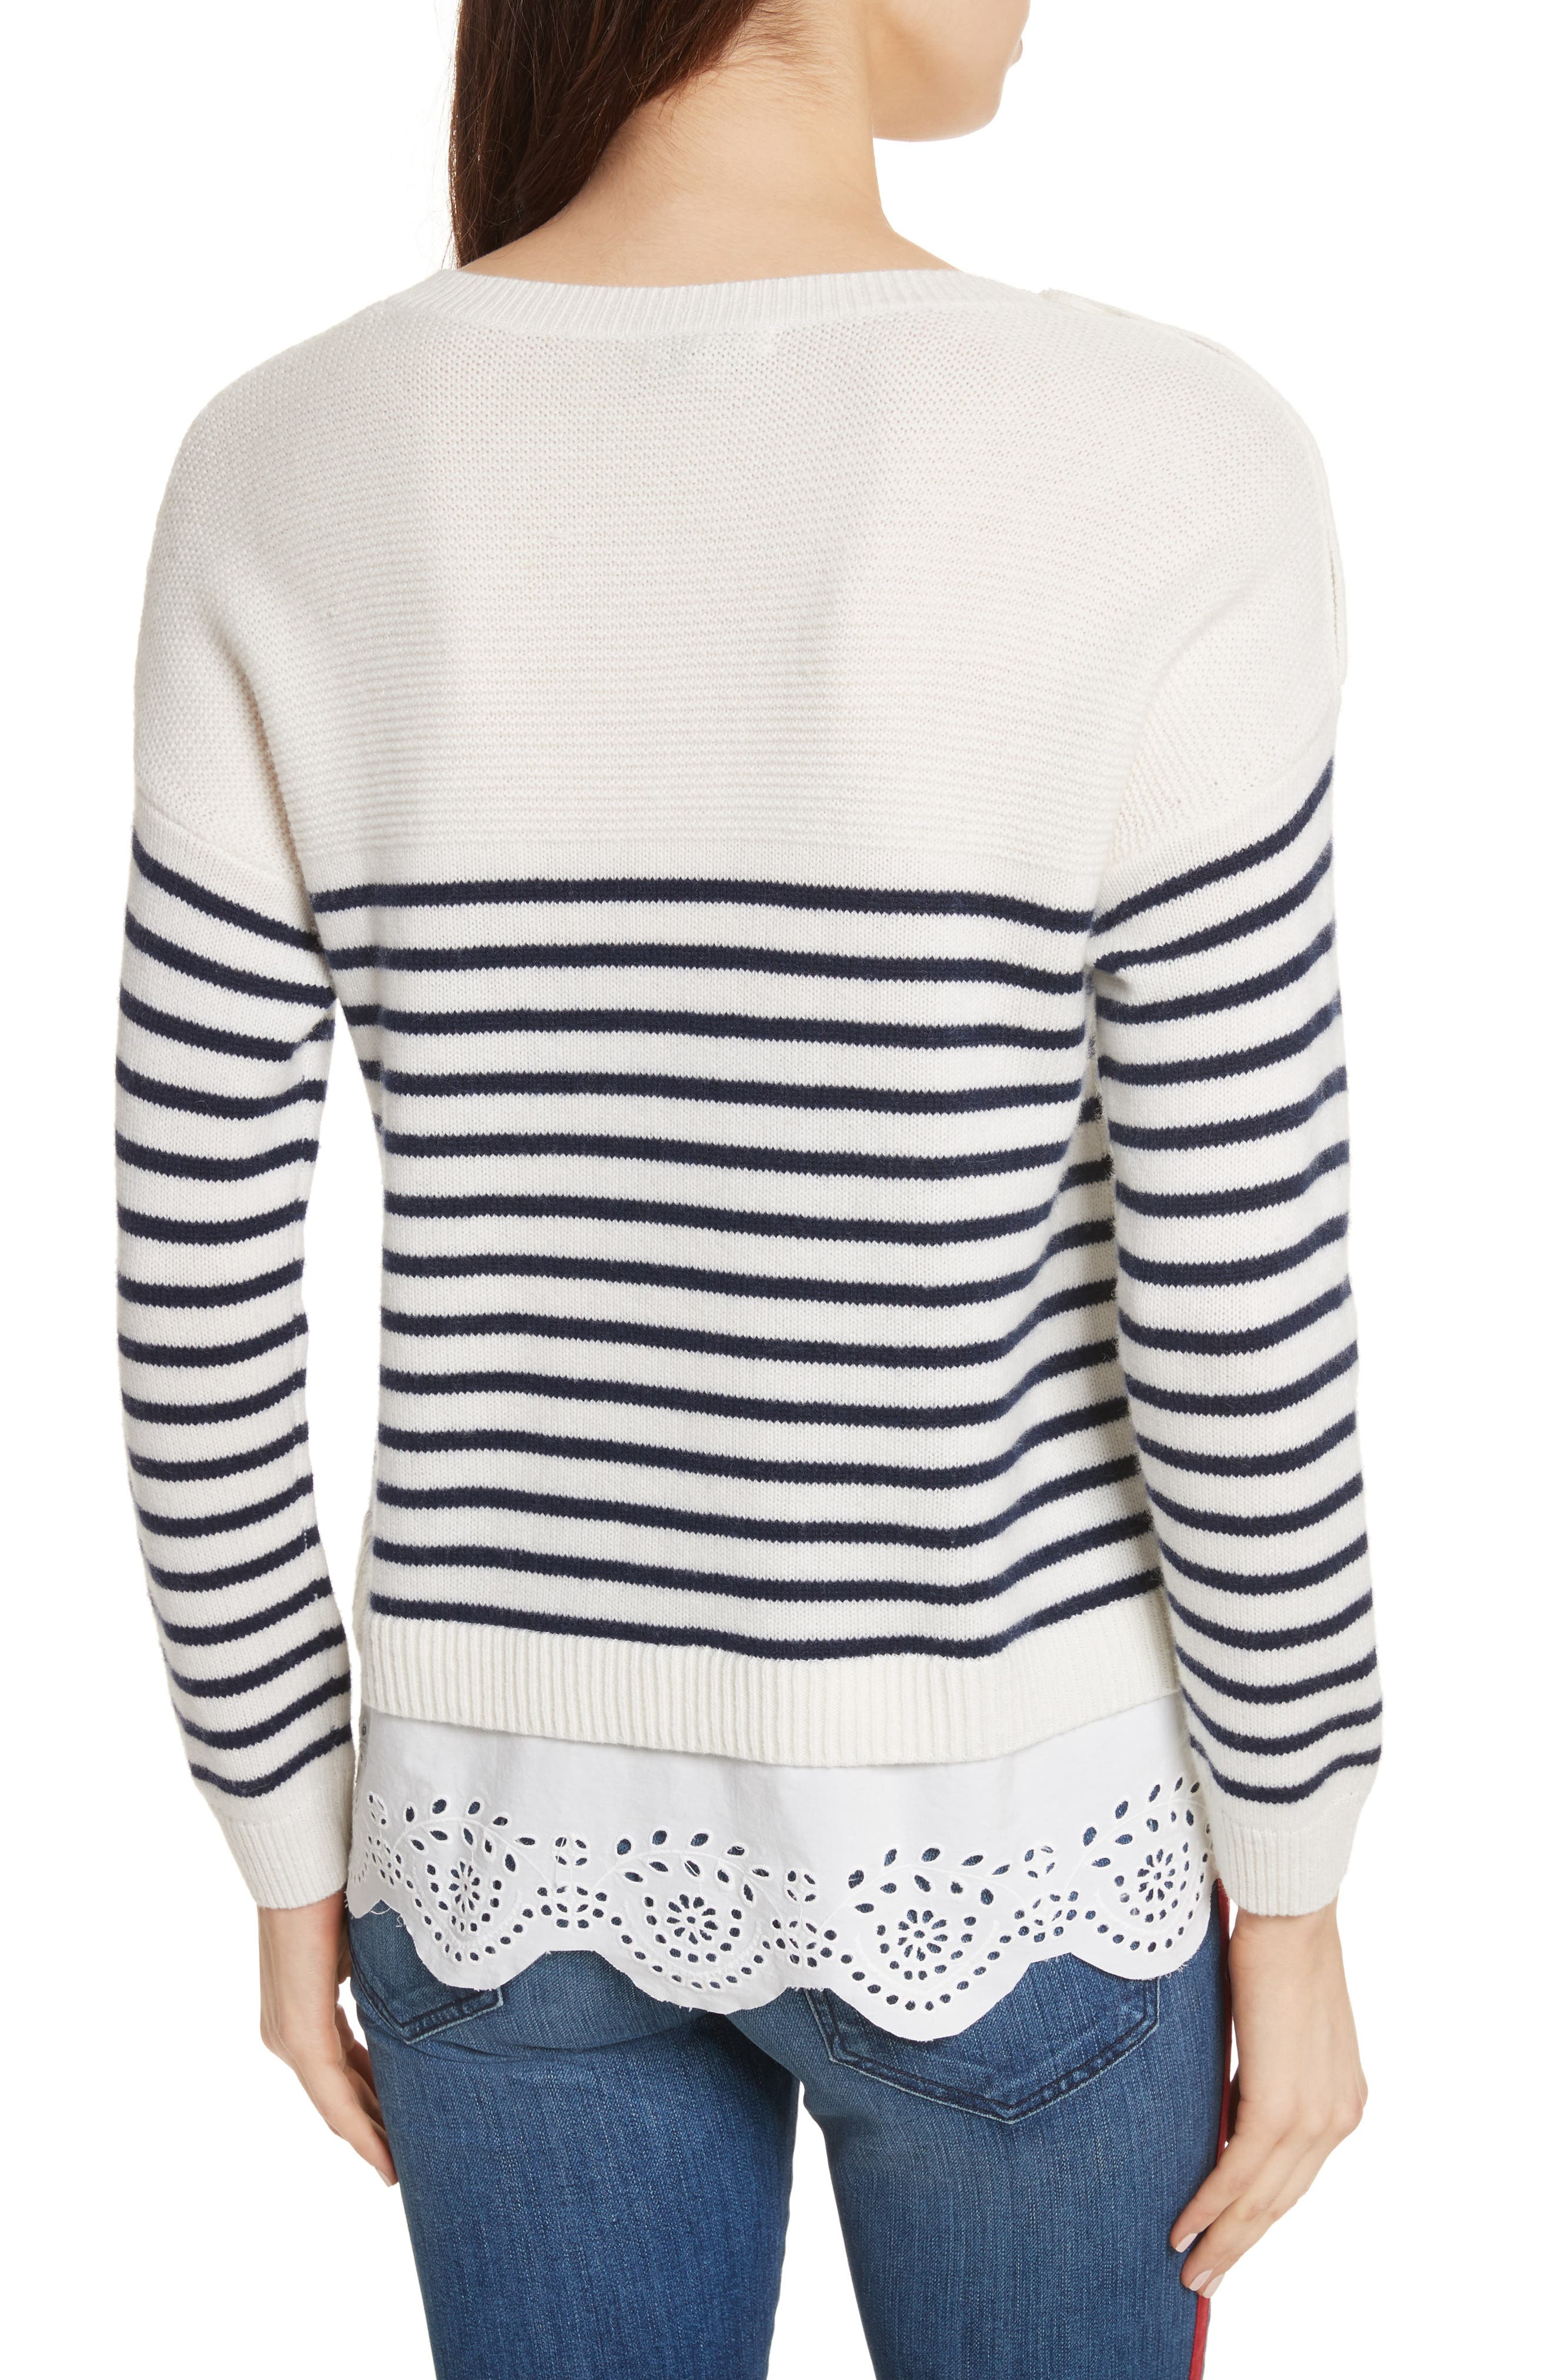 Aefre Woven Trim Wool & Cashmere Sweater,                             Alternate thumbnail 2, color,                             029